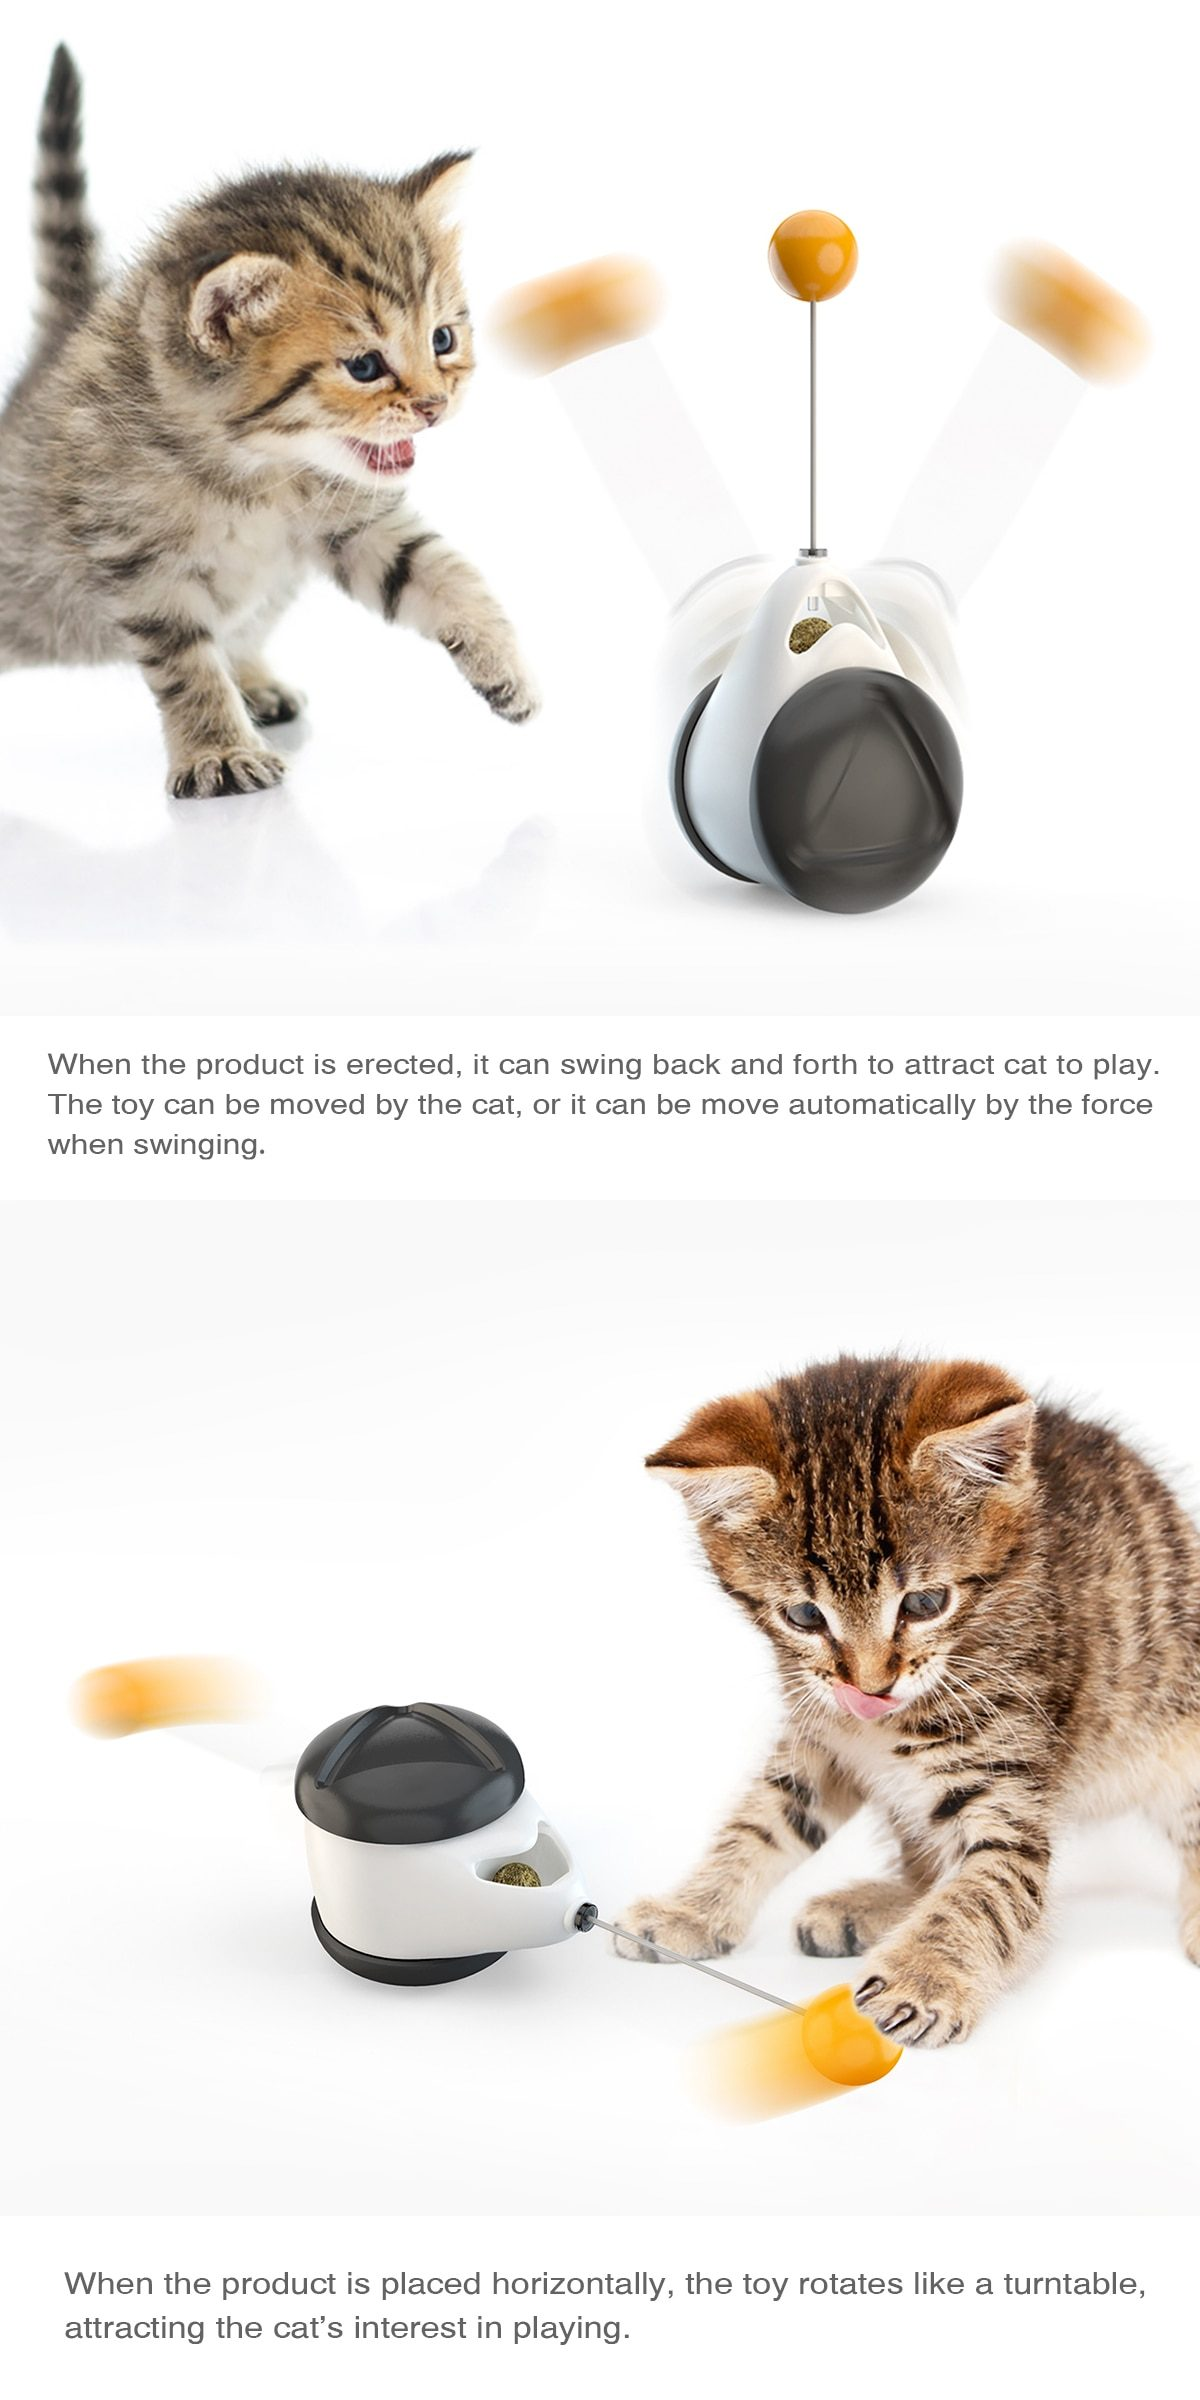 Pet Dog Cat Toy Tumbler With Catnip For Kitten Playing Training Entertainment IQ Improvement High Quality Pet Products Supplies